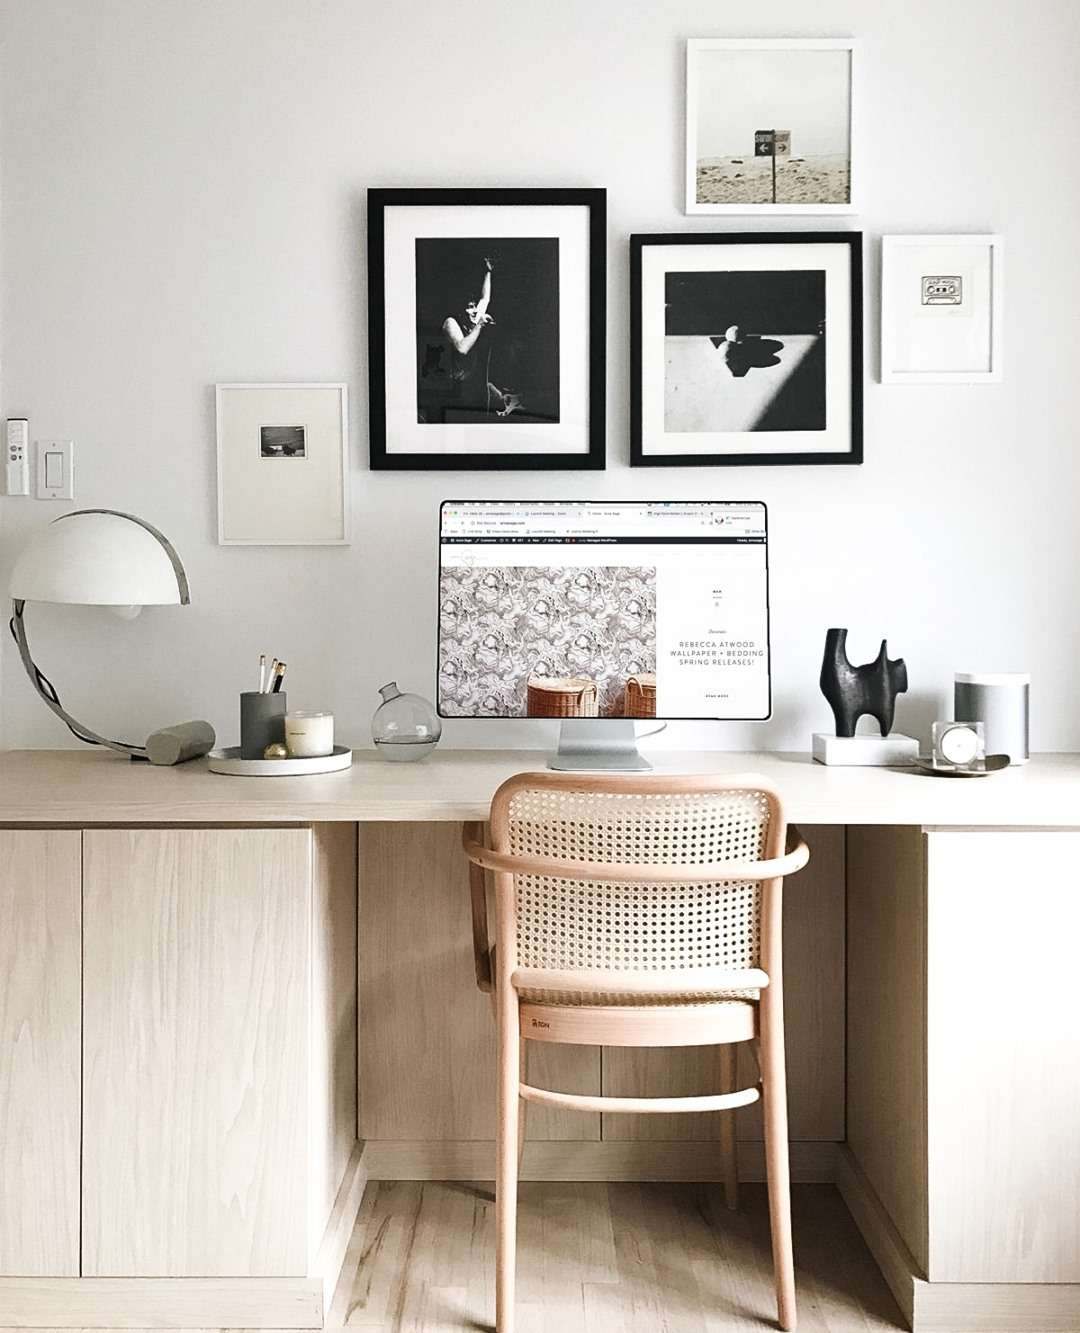 Office with black and white framed prints